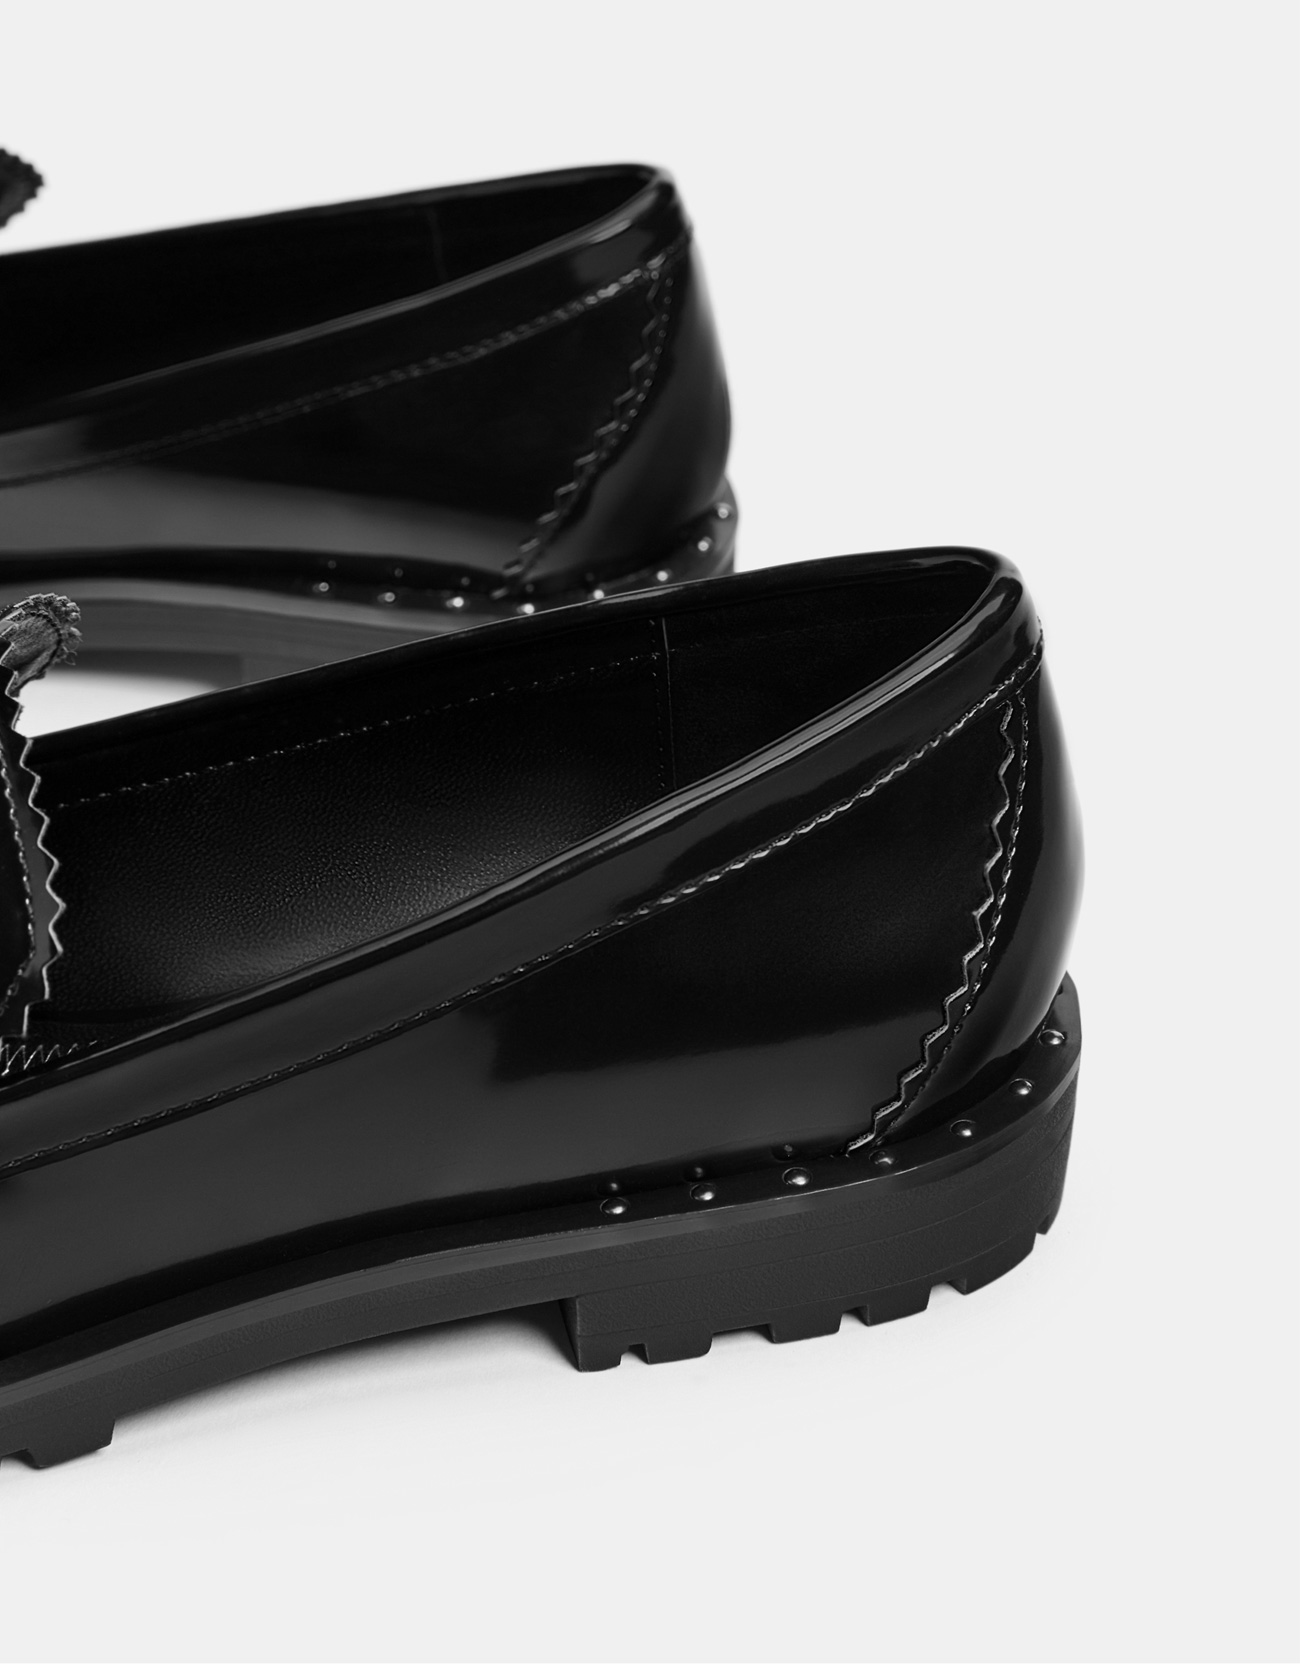 c89f8e85c7a5 Black studded penny loafers - Shoes - Bershka Macedonia